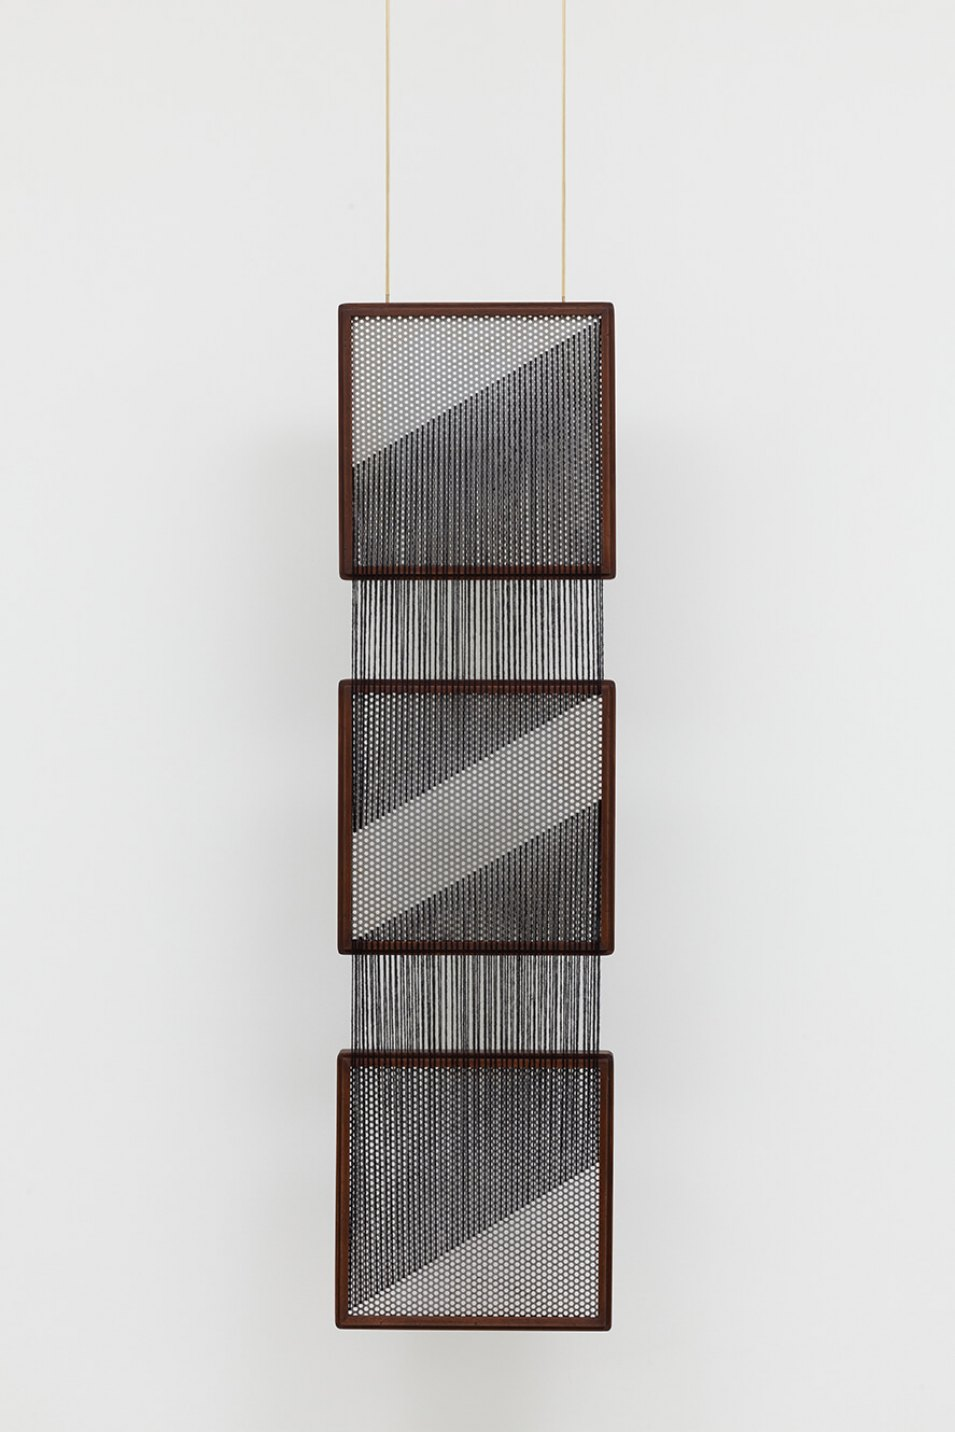 Paloma Bosquê, <em>On provisory interaction</em>, 2016, coffee sieve, wool and brass rods, 112 × 30,5 × 4 cm - Mendes Wood DM